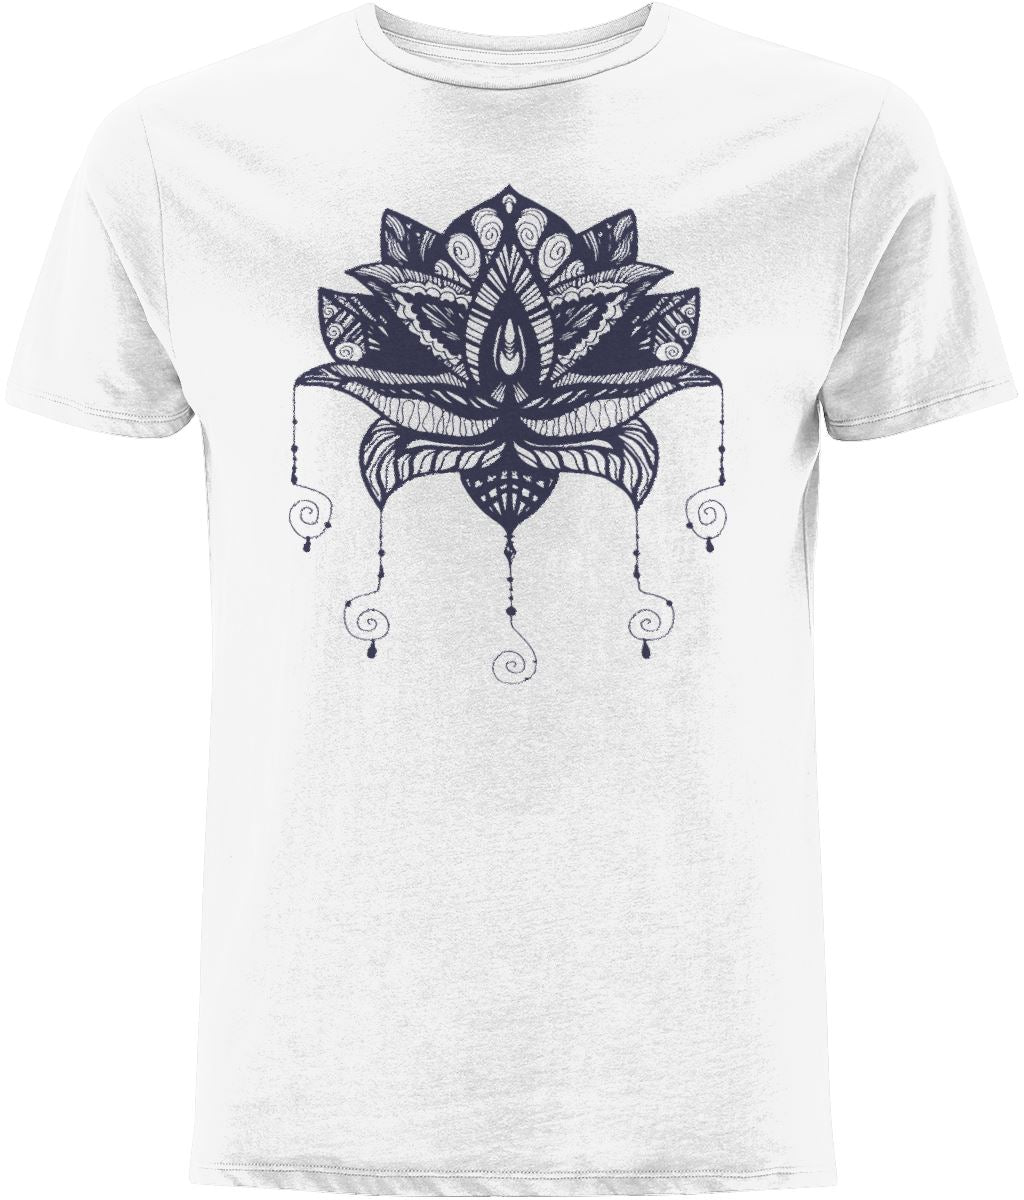 Lotus Flower I T-shirt Clothing IndianBelieves White X-Small